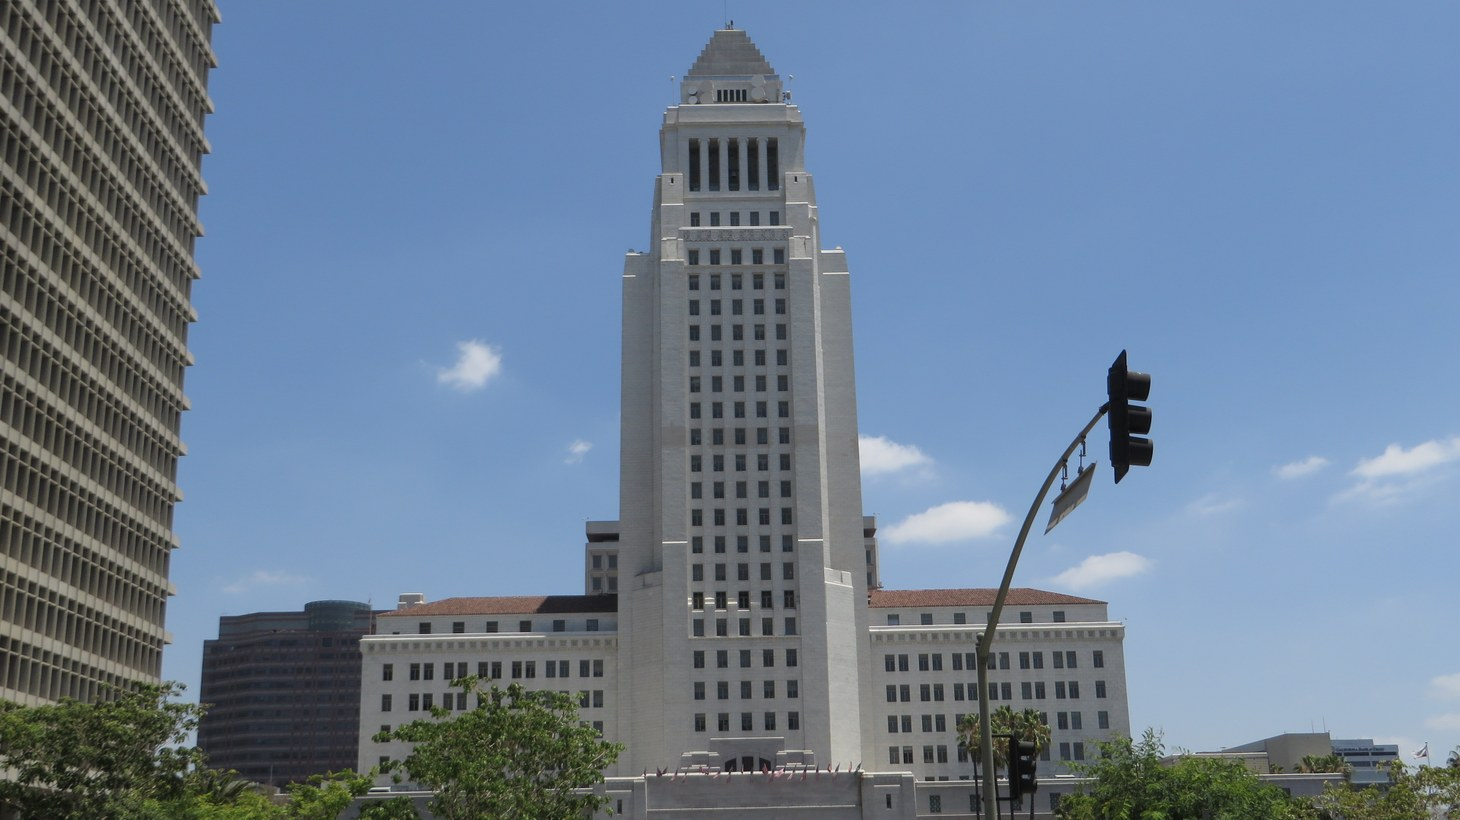 Los Angeles City Hall, completed 1928, is the center of the government of the city of Los Angeles, California, and houses the mayor's office and the meeting chambers and offices of the Los Angeles City Council.